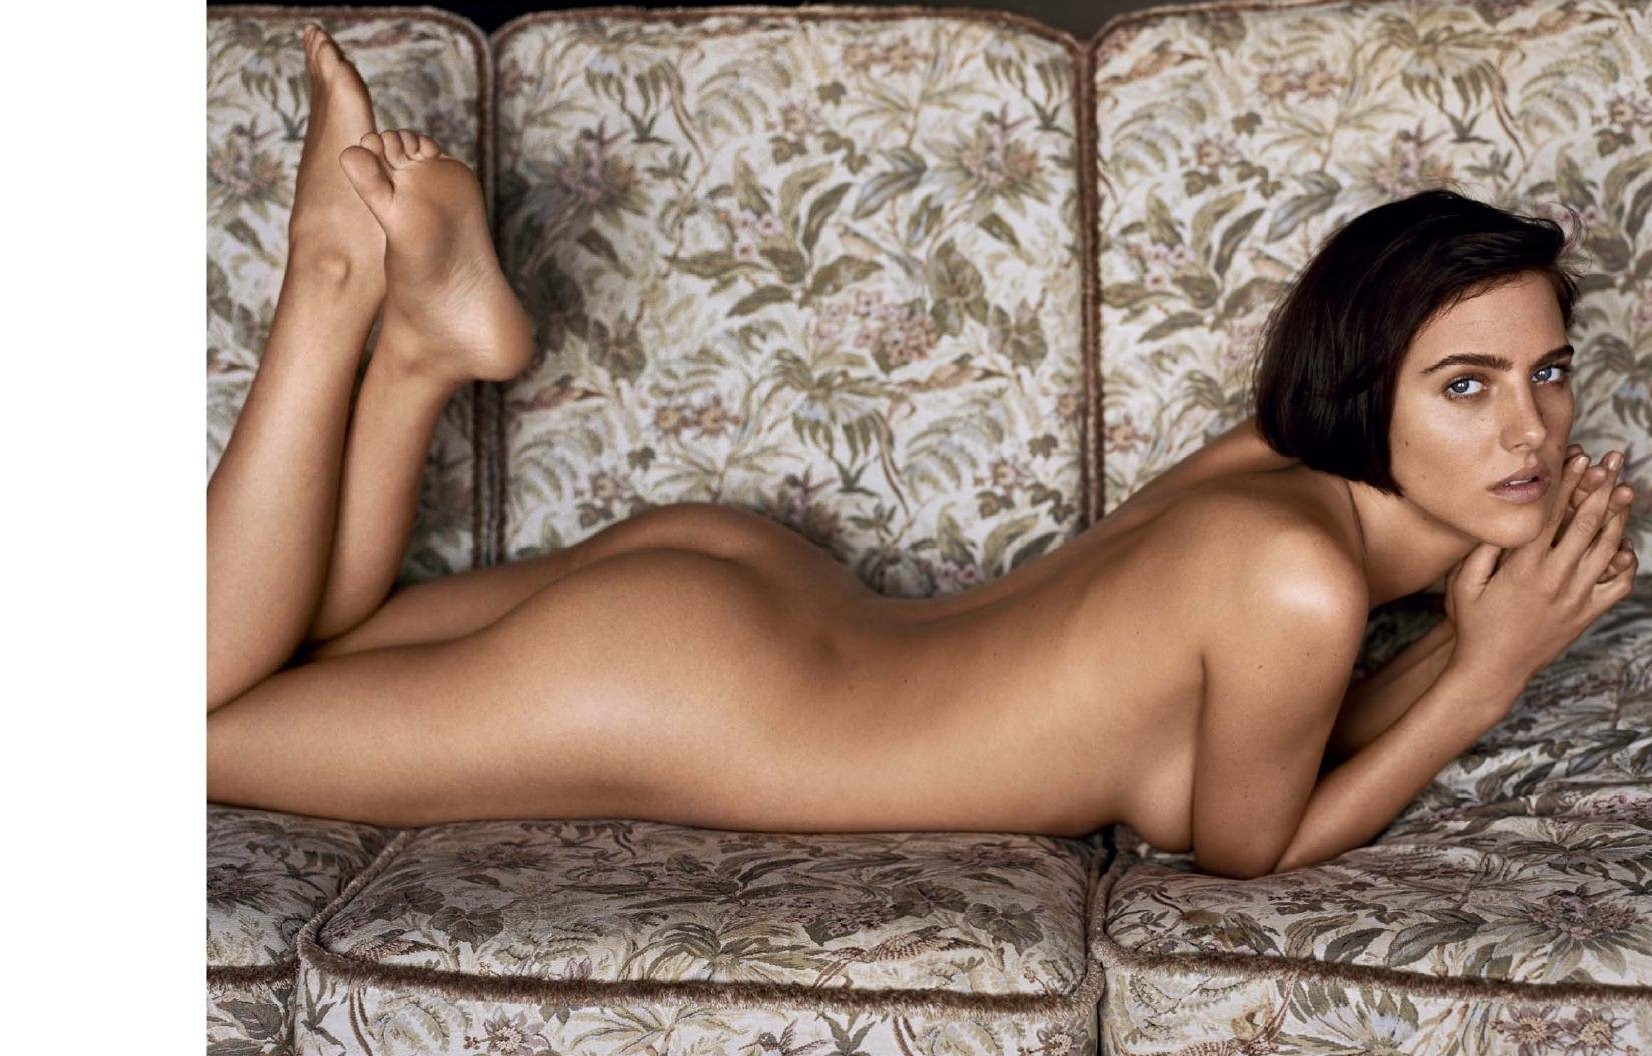 See and save as naughty french girl naked on the net for her th birthday porn pict